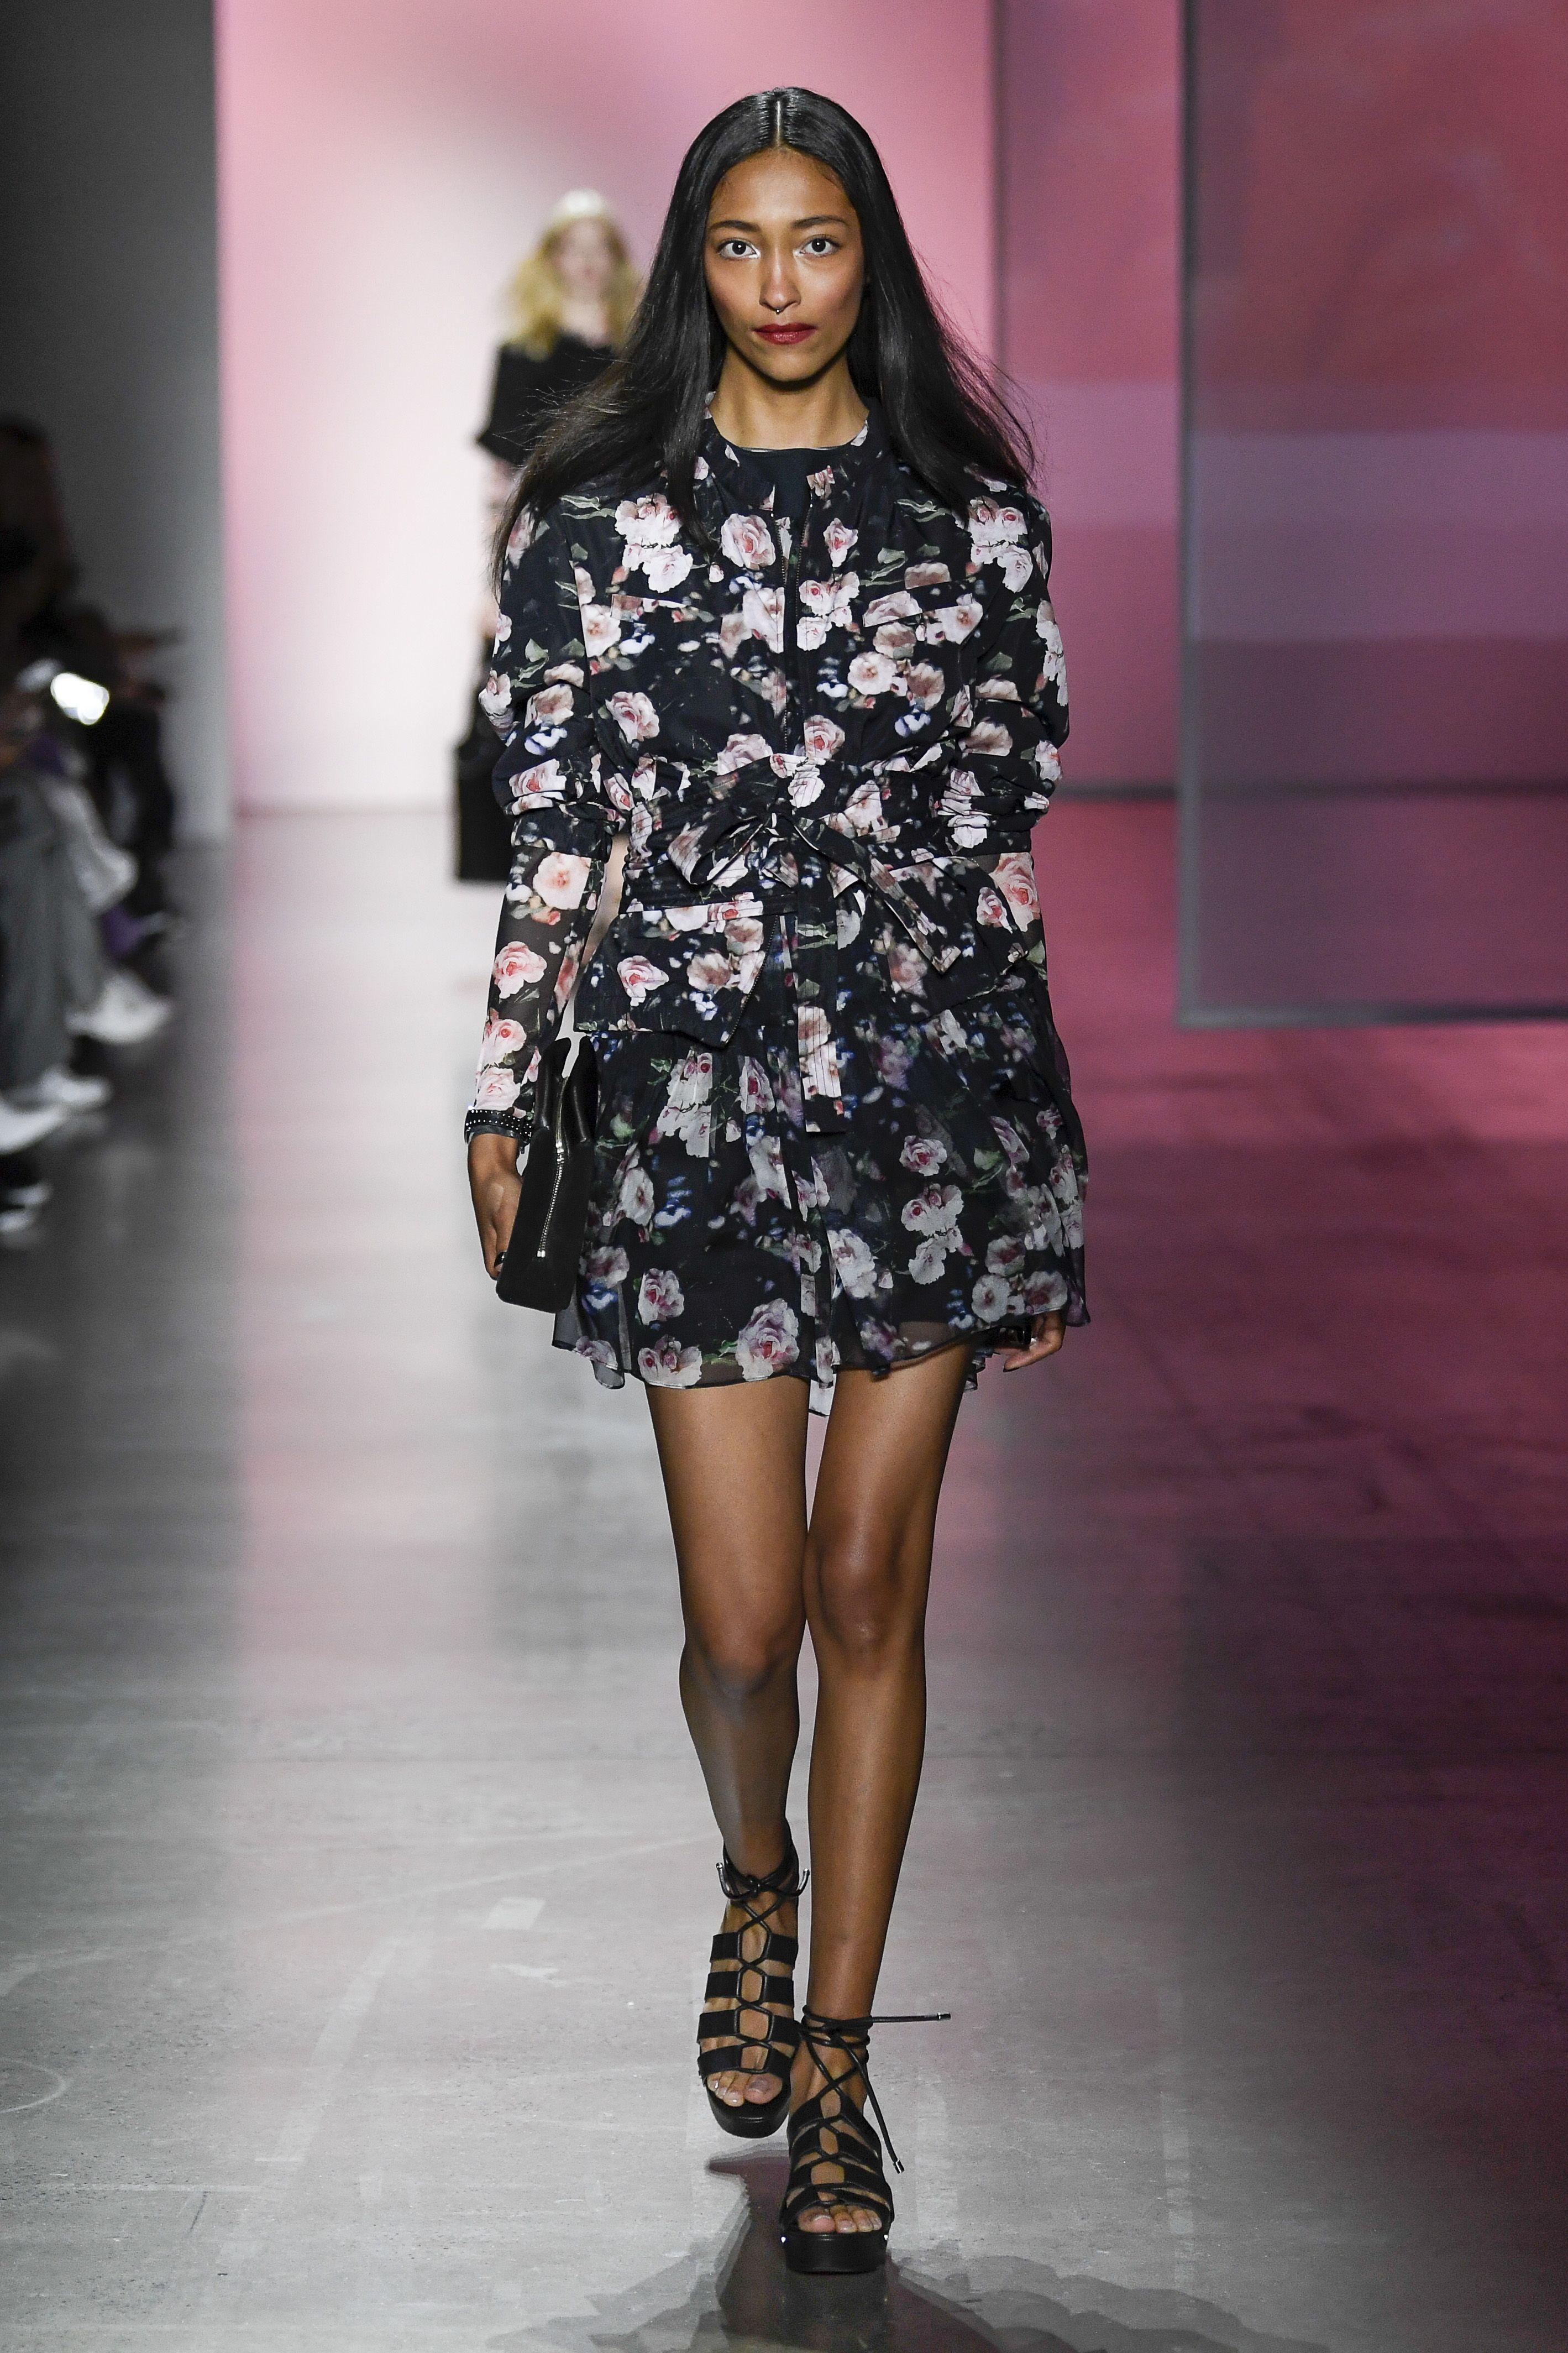 aedcfa47ee7bf Rebecca Minkoff Spring Summer 2019 #NYFW Runway Show. Ollie Dress, Iven  Sandal, Cyder Top, Splice Clutch. Floral dress, floral top, black platform  sandals, ...